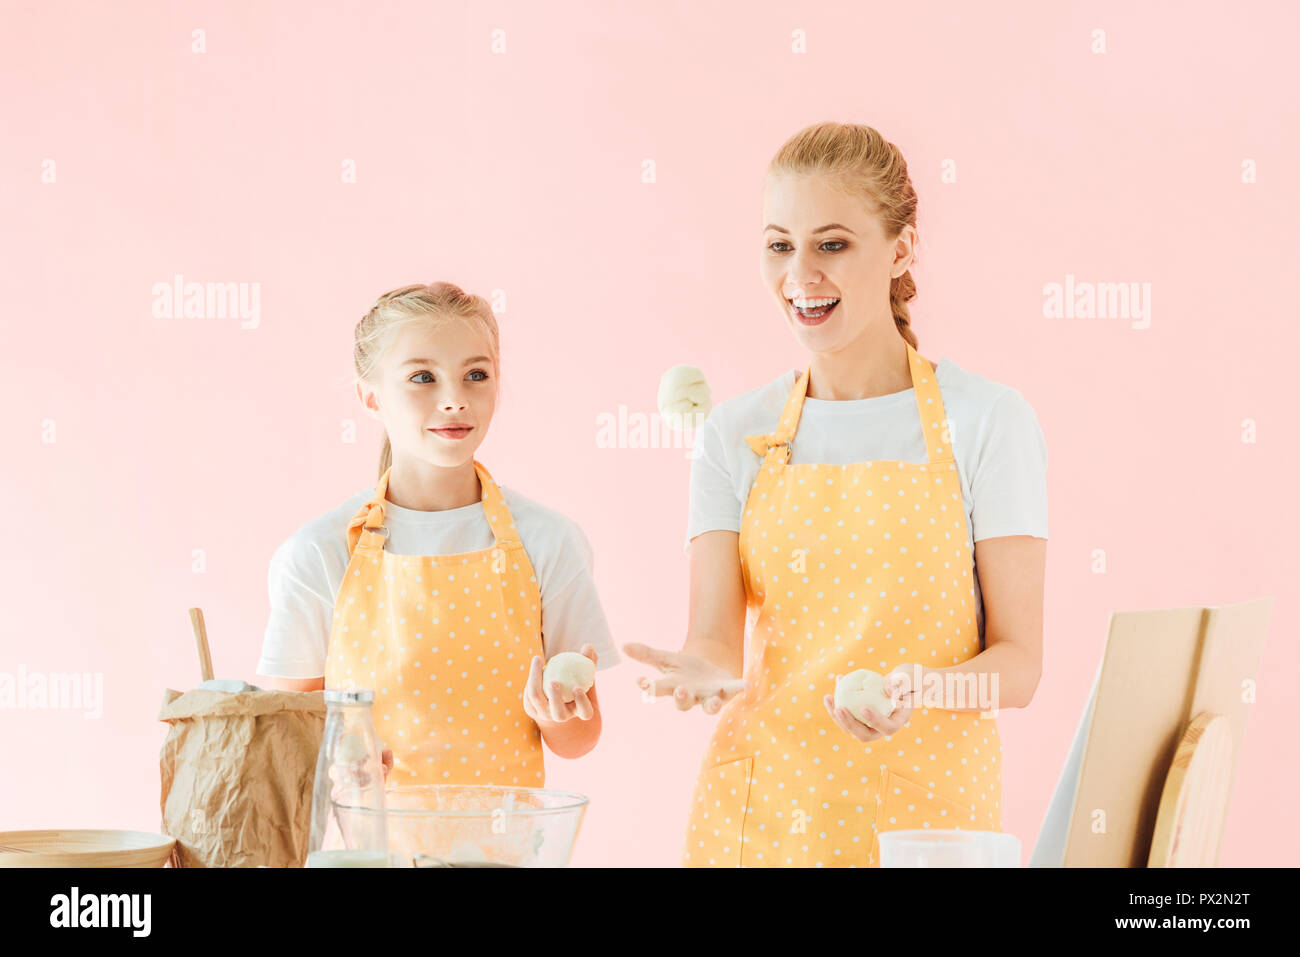 smiling mother and daughter juggling with dough pieces while cooking isolated on pink - Stock Image